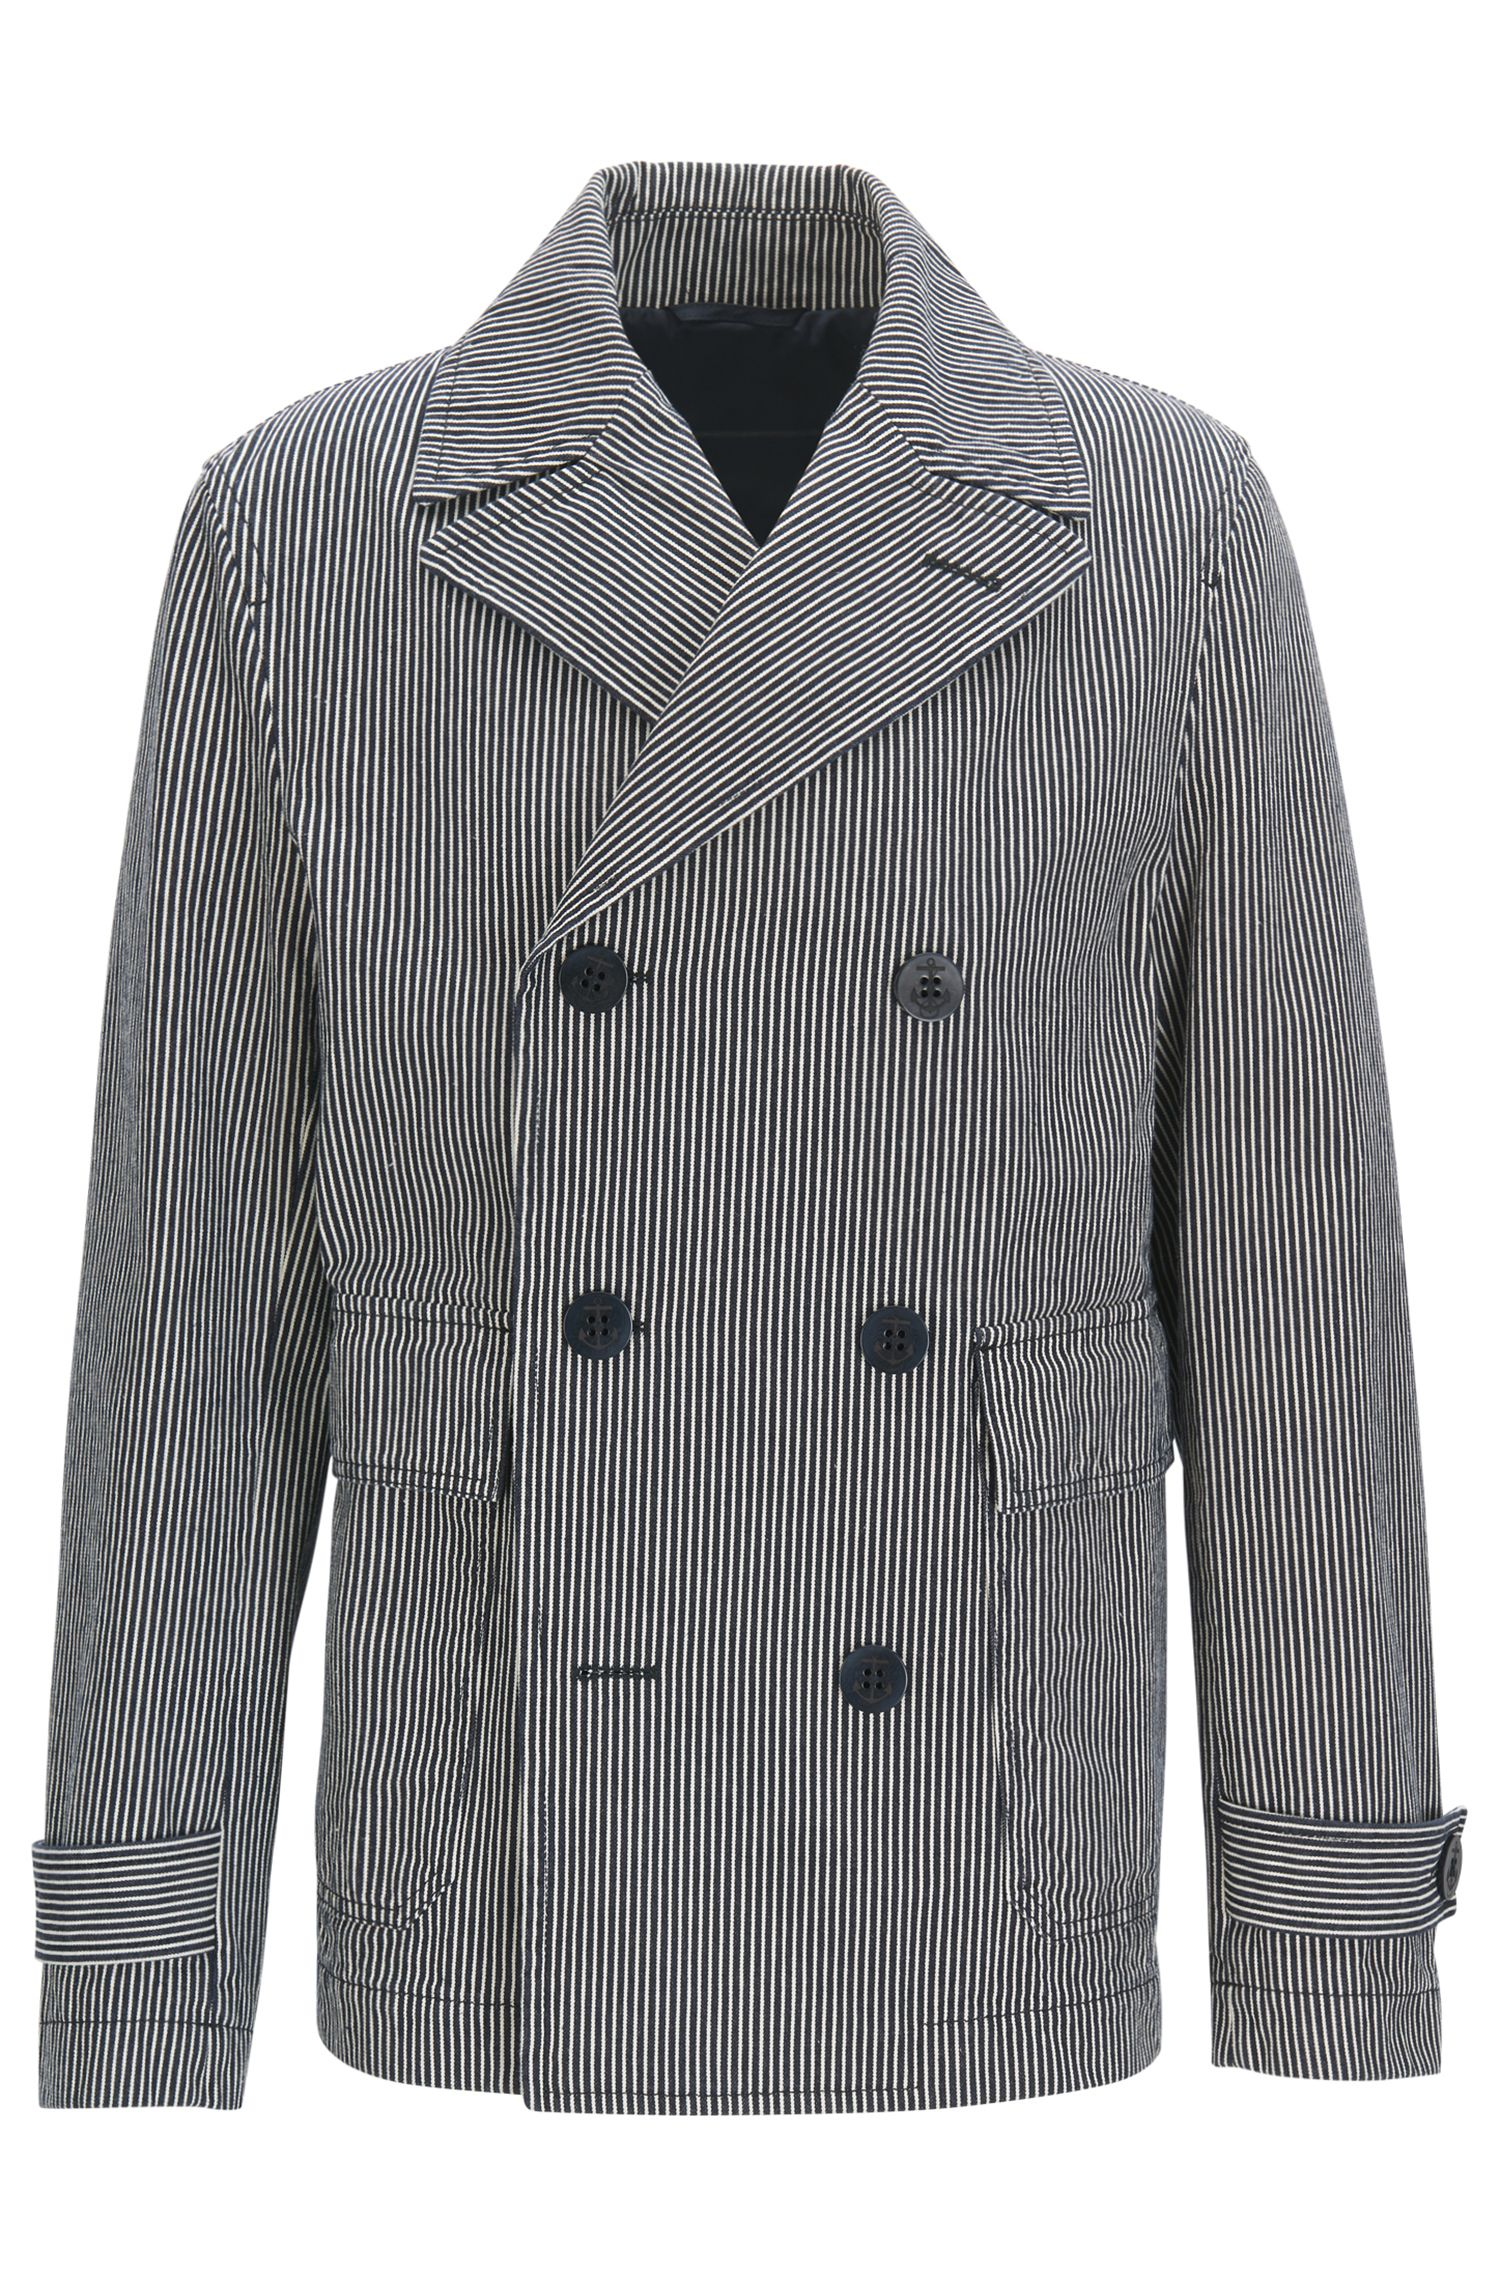 Double-breasted cotton peacoat with washed stripes